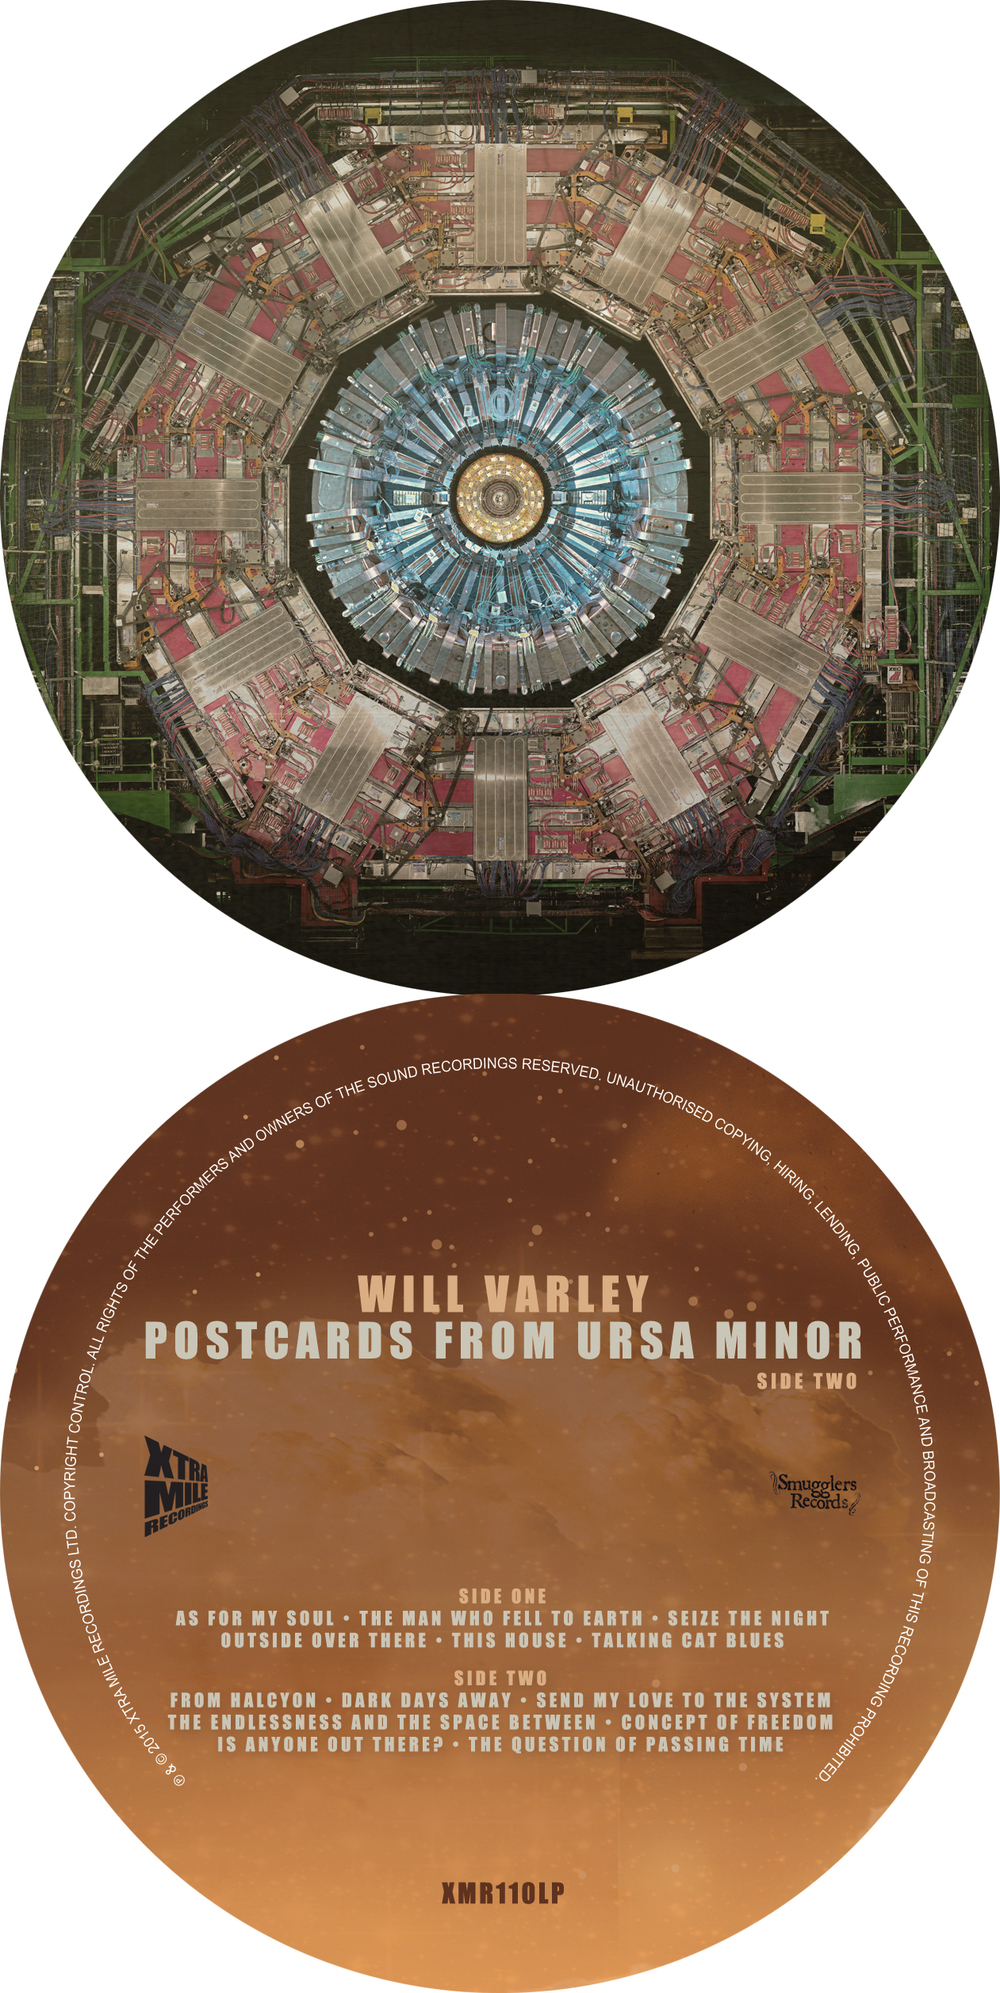 The labels for both sides of the vinyl release of  Postcards From Ursa Minor .